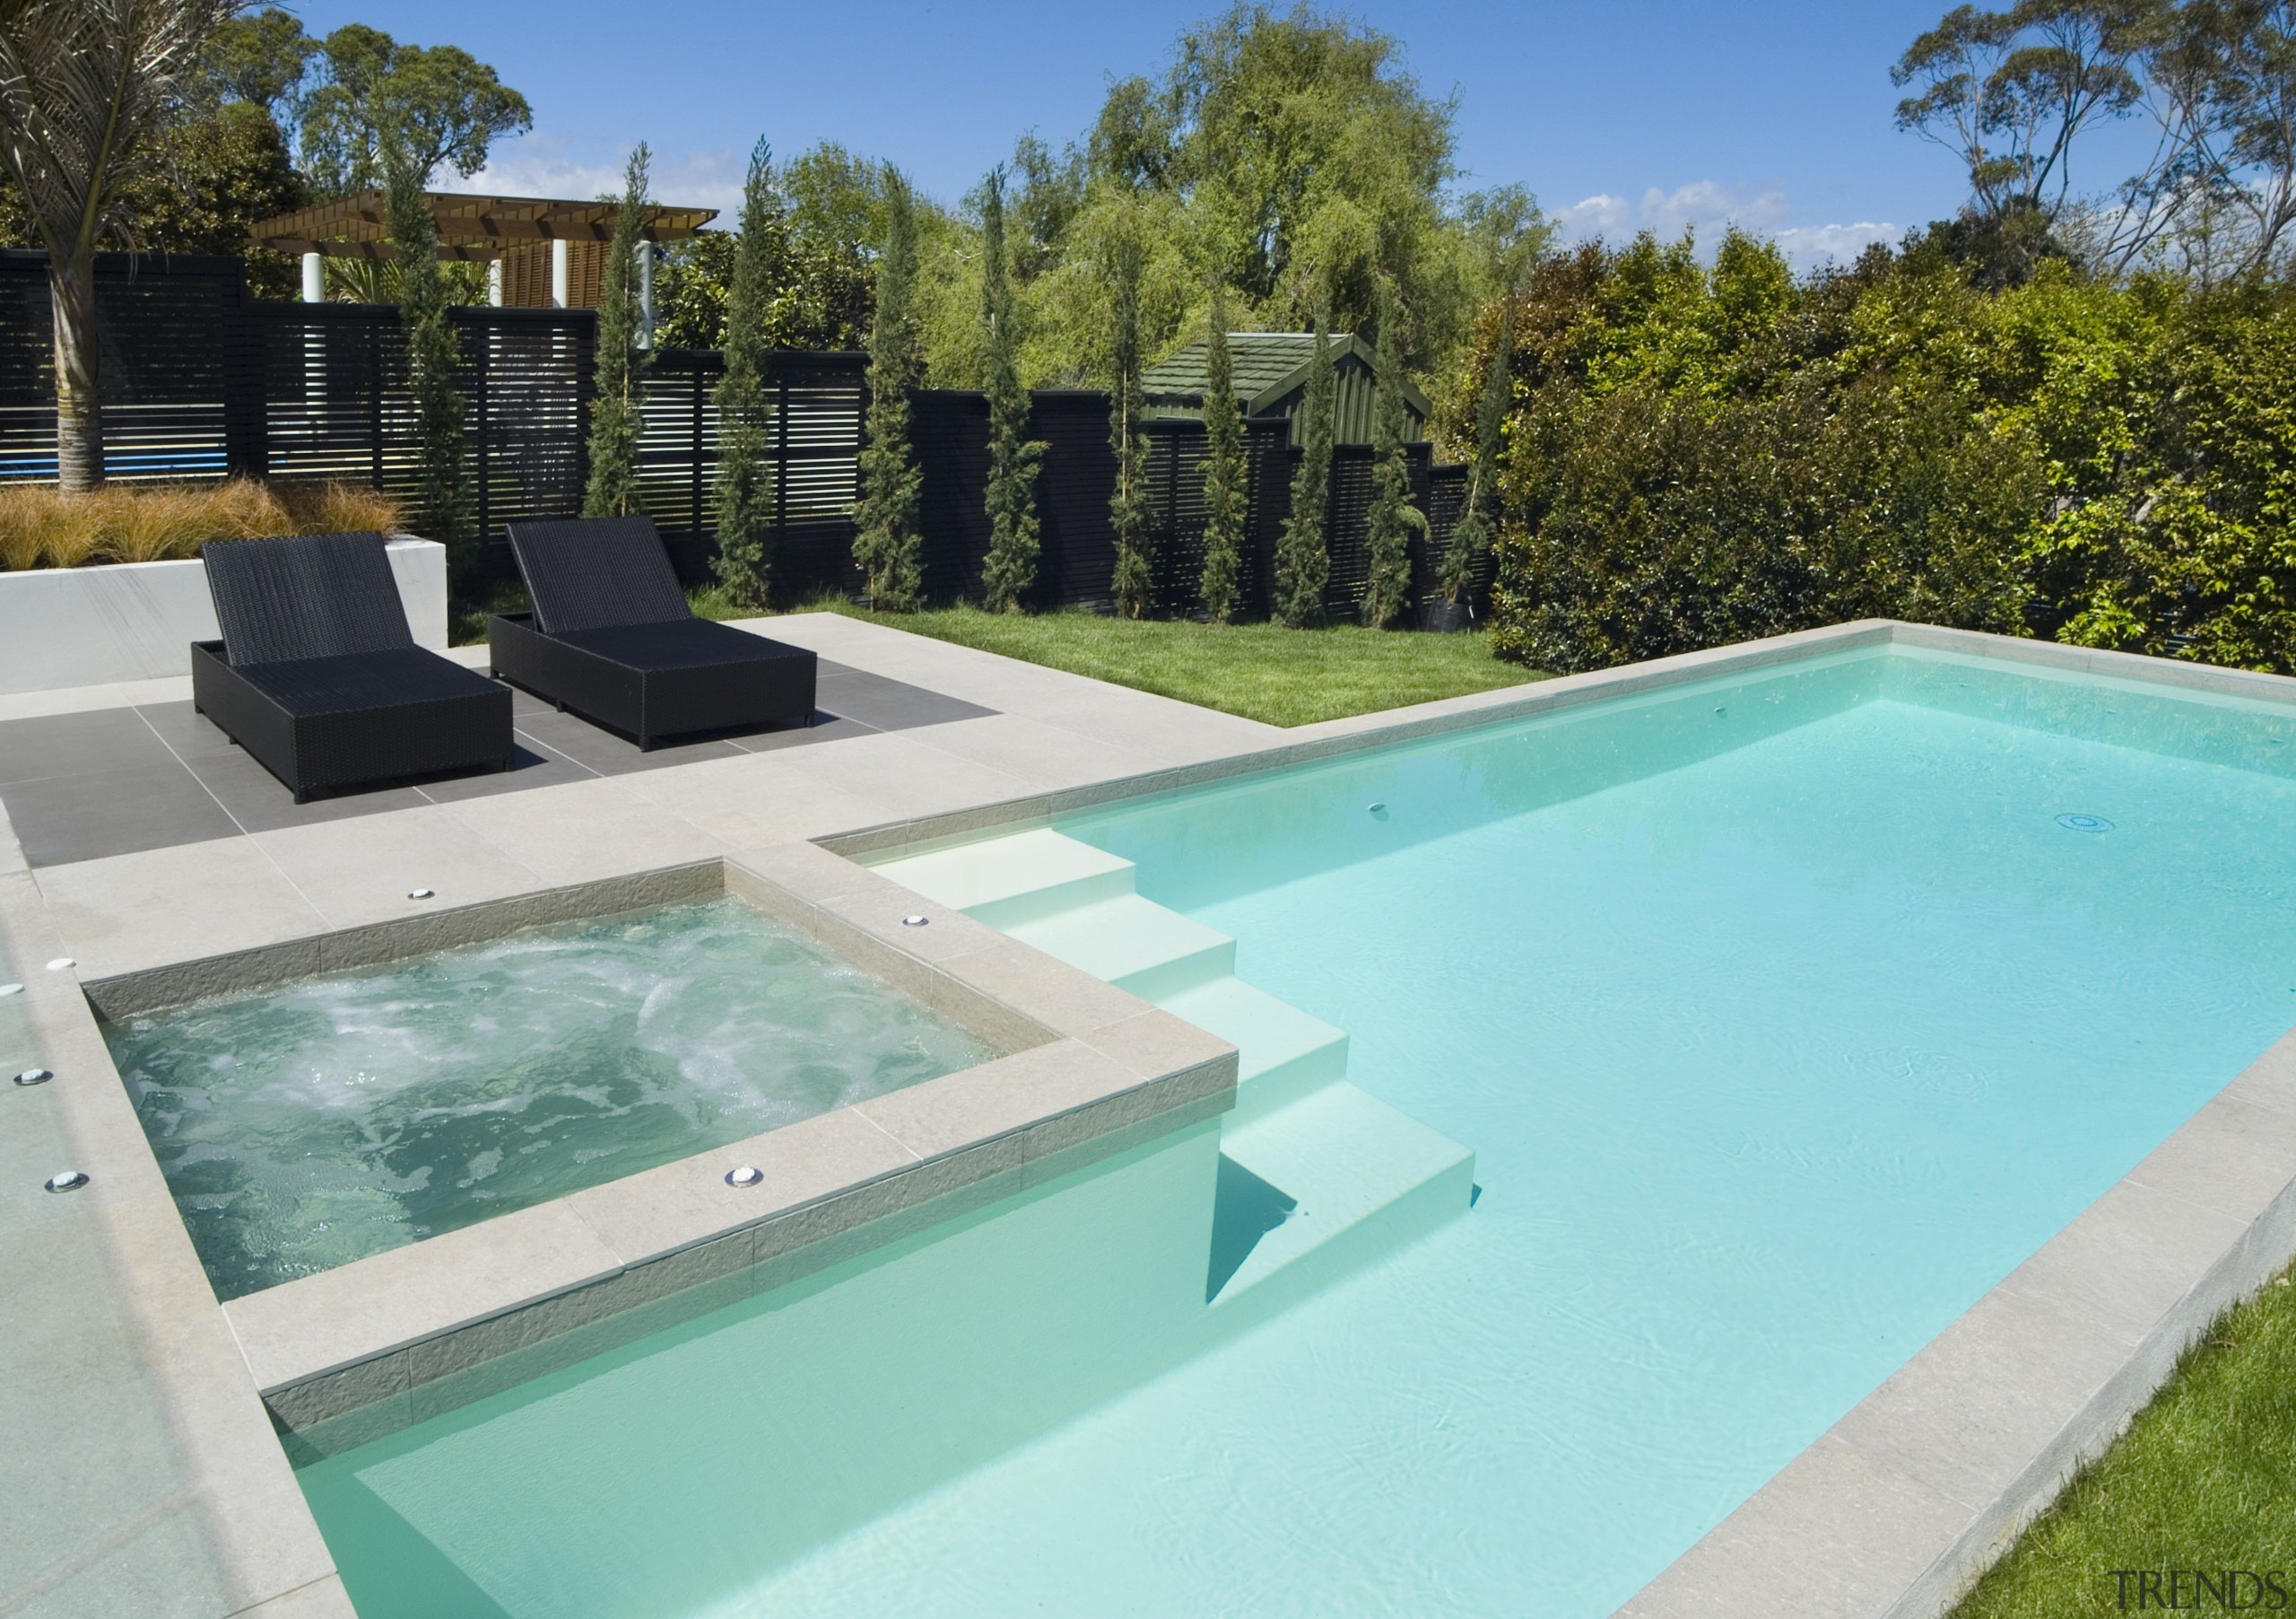 A view of a swimming pool by Mayfair backyard, estate, house, leisure, property, real estate, swimming pool, water, teal